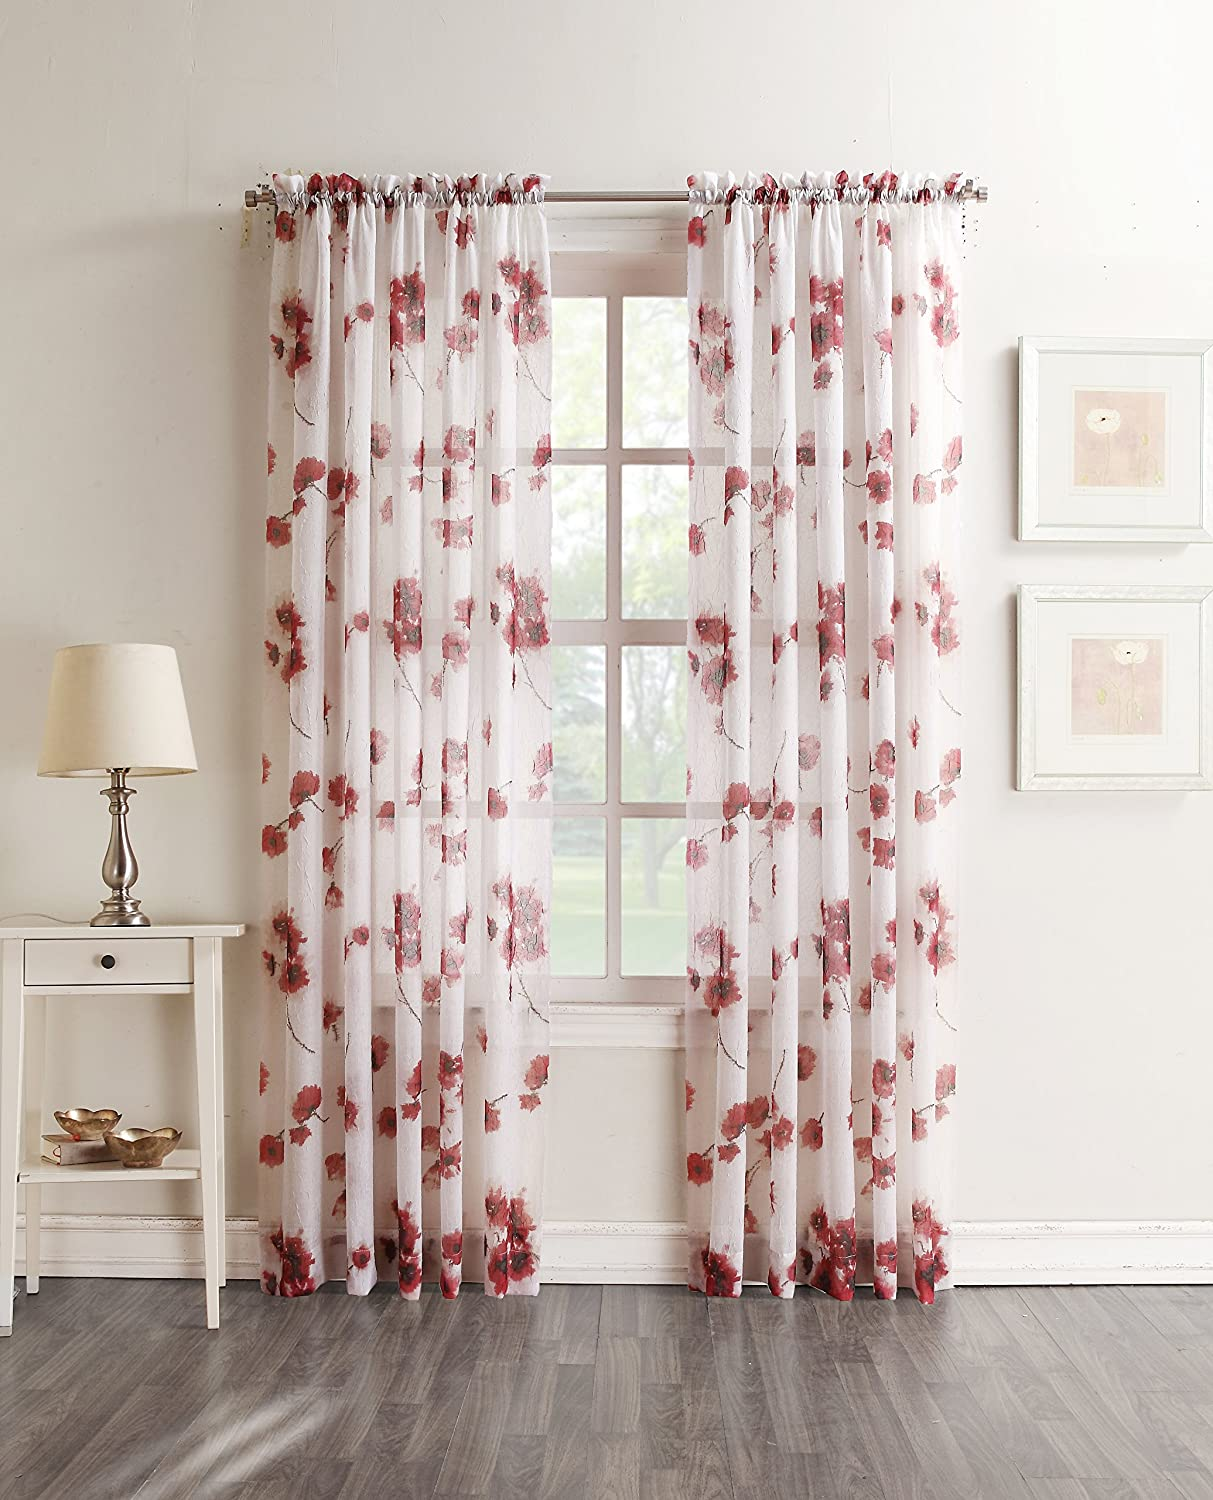 "Kiki Floral Crushed Sheer Voile Curtain Panel, 51"" x 84"", Coral Orange"